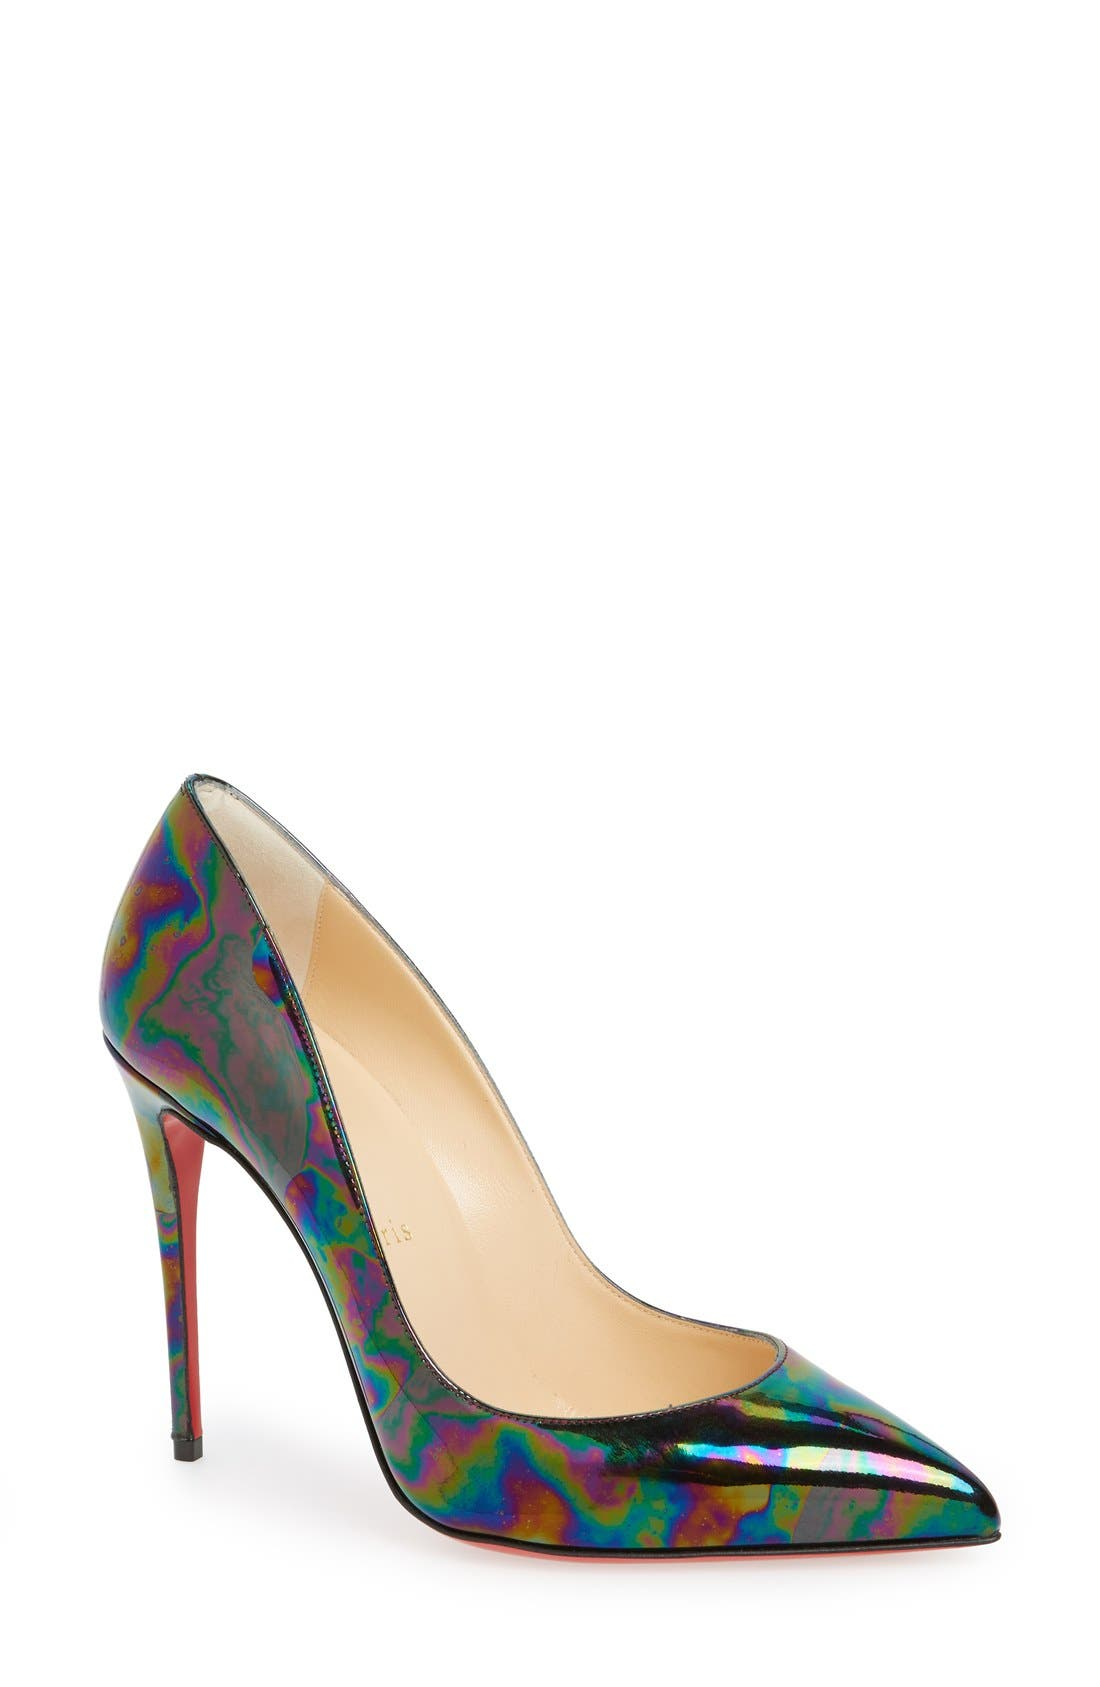 Alternate Image 1 Selected - Christian Louboutin 'Pigalle Follies' Pump (Women)